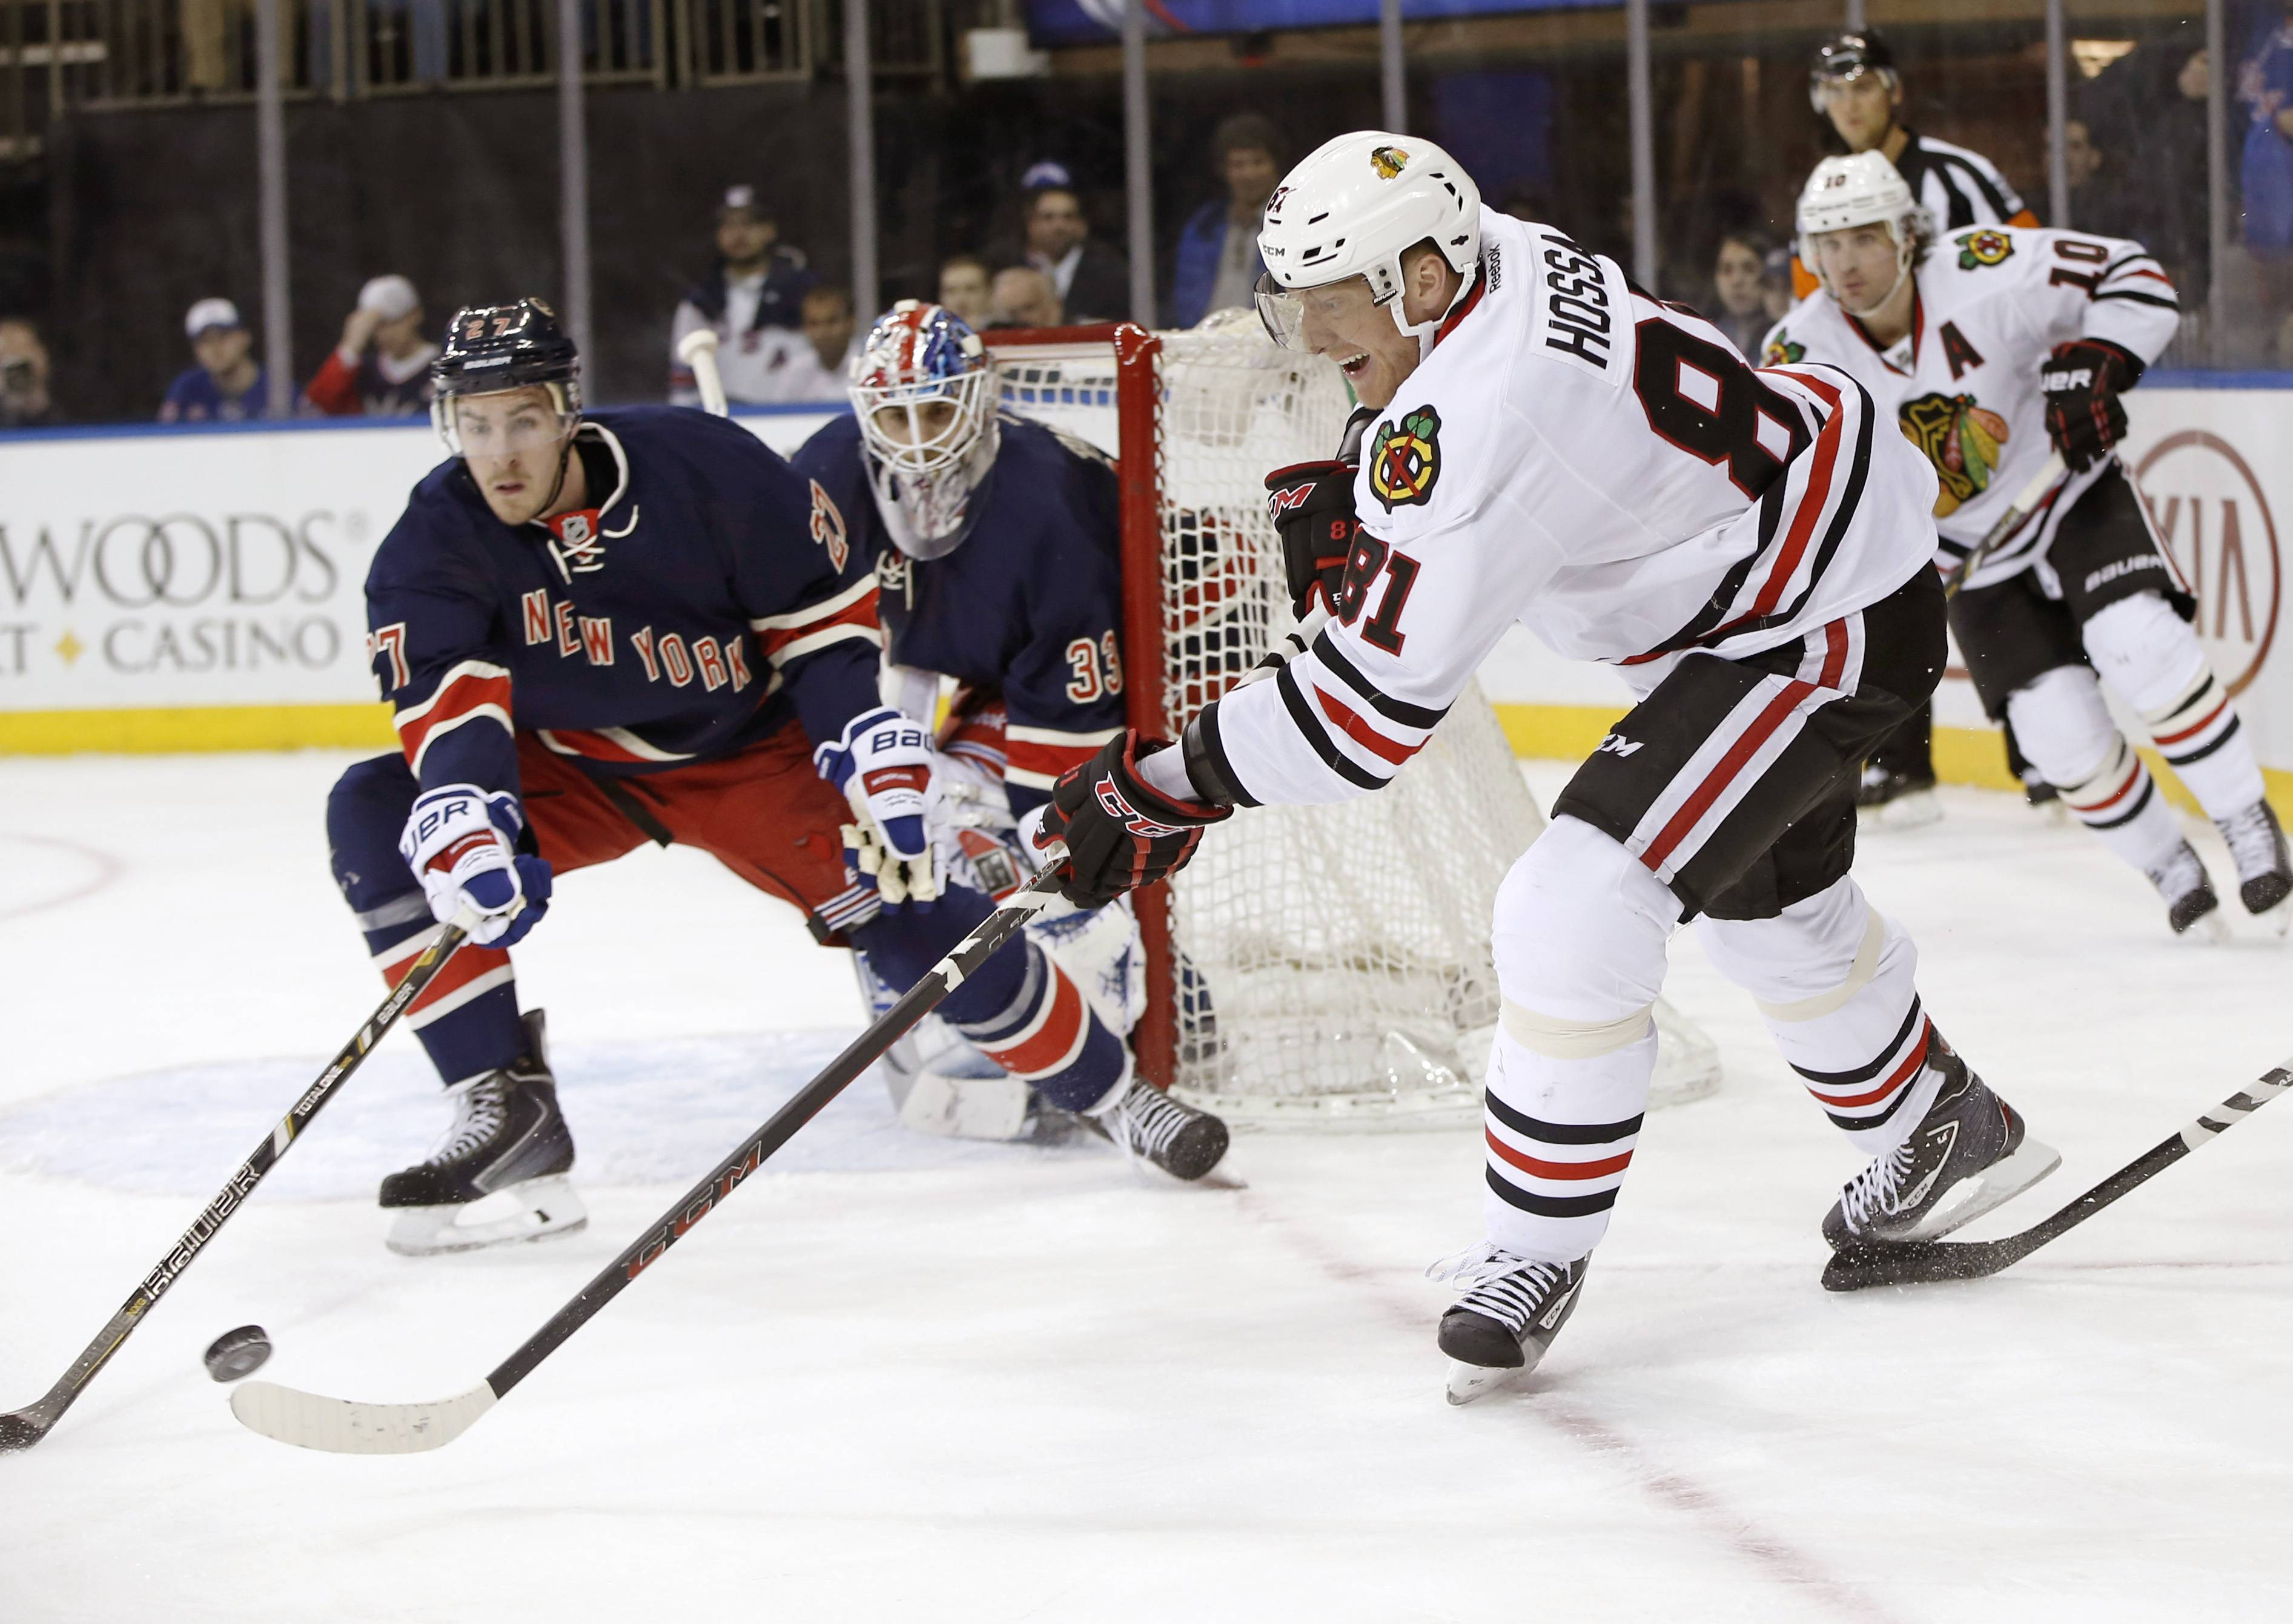 Rangers defenseman Ryan McDonagh defends against the Blackhawks' Marian Hossa in the third period Thursday at Madison Square Garden in New York.